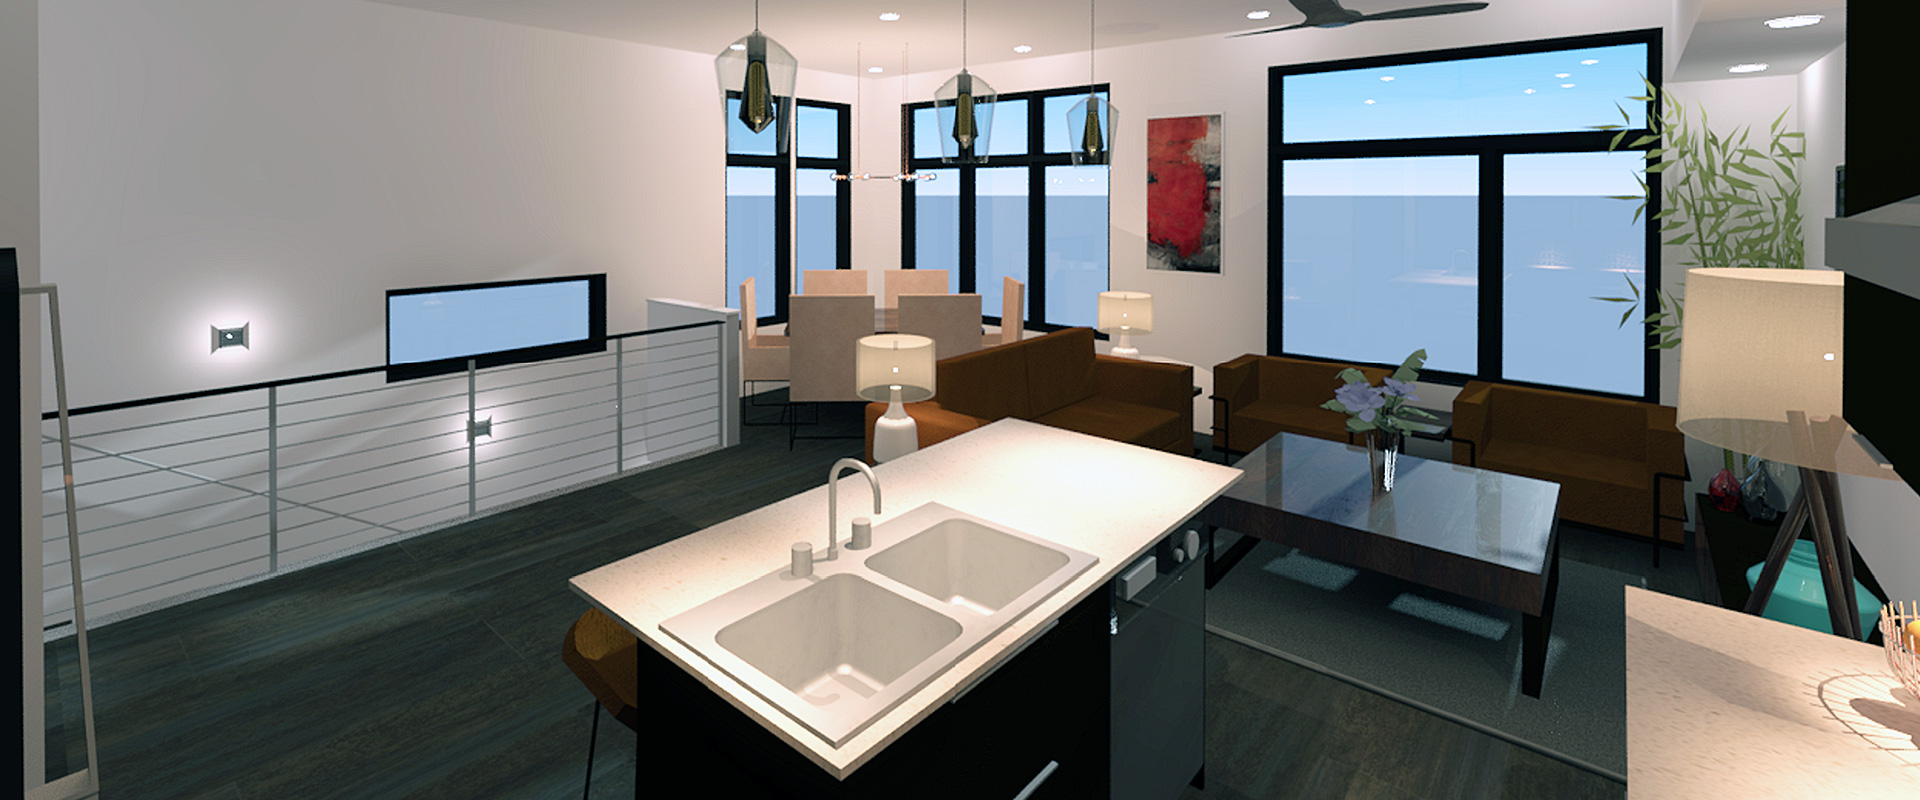 High Street Townhomes - Interior